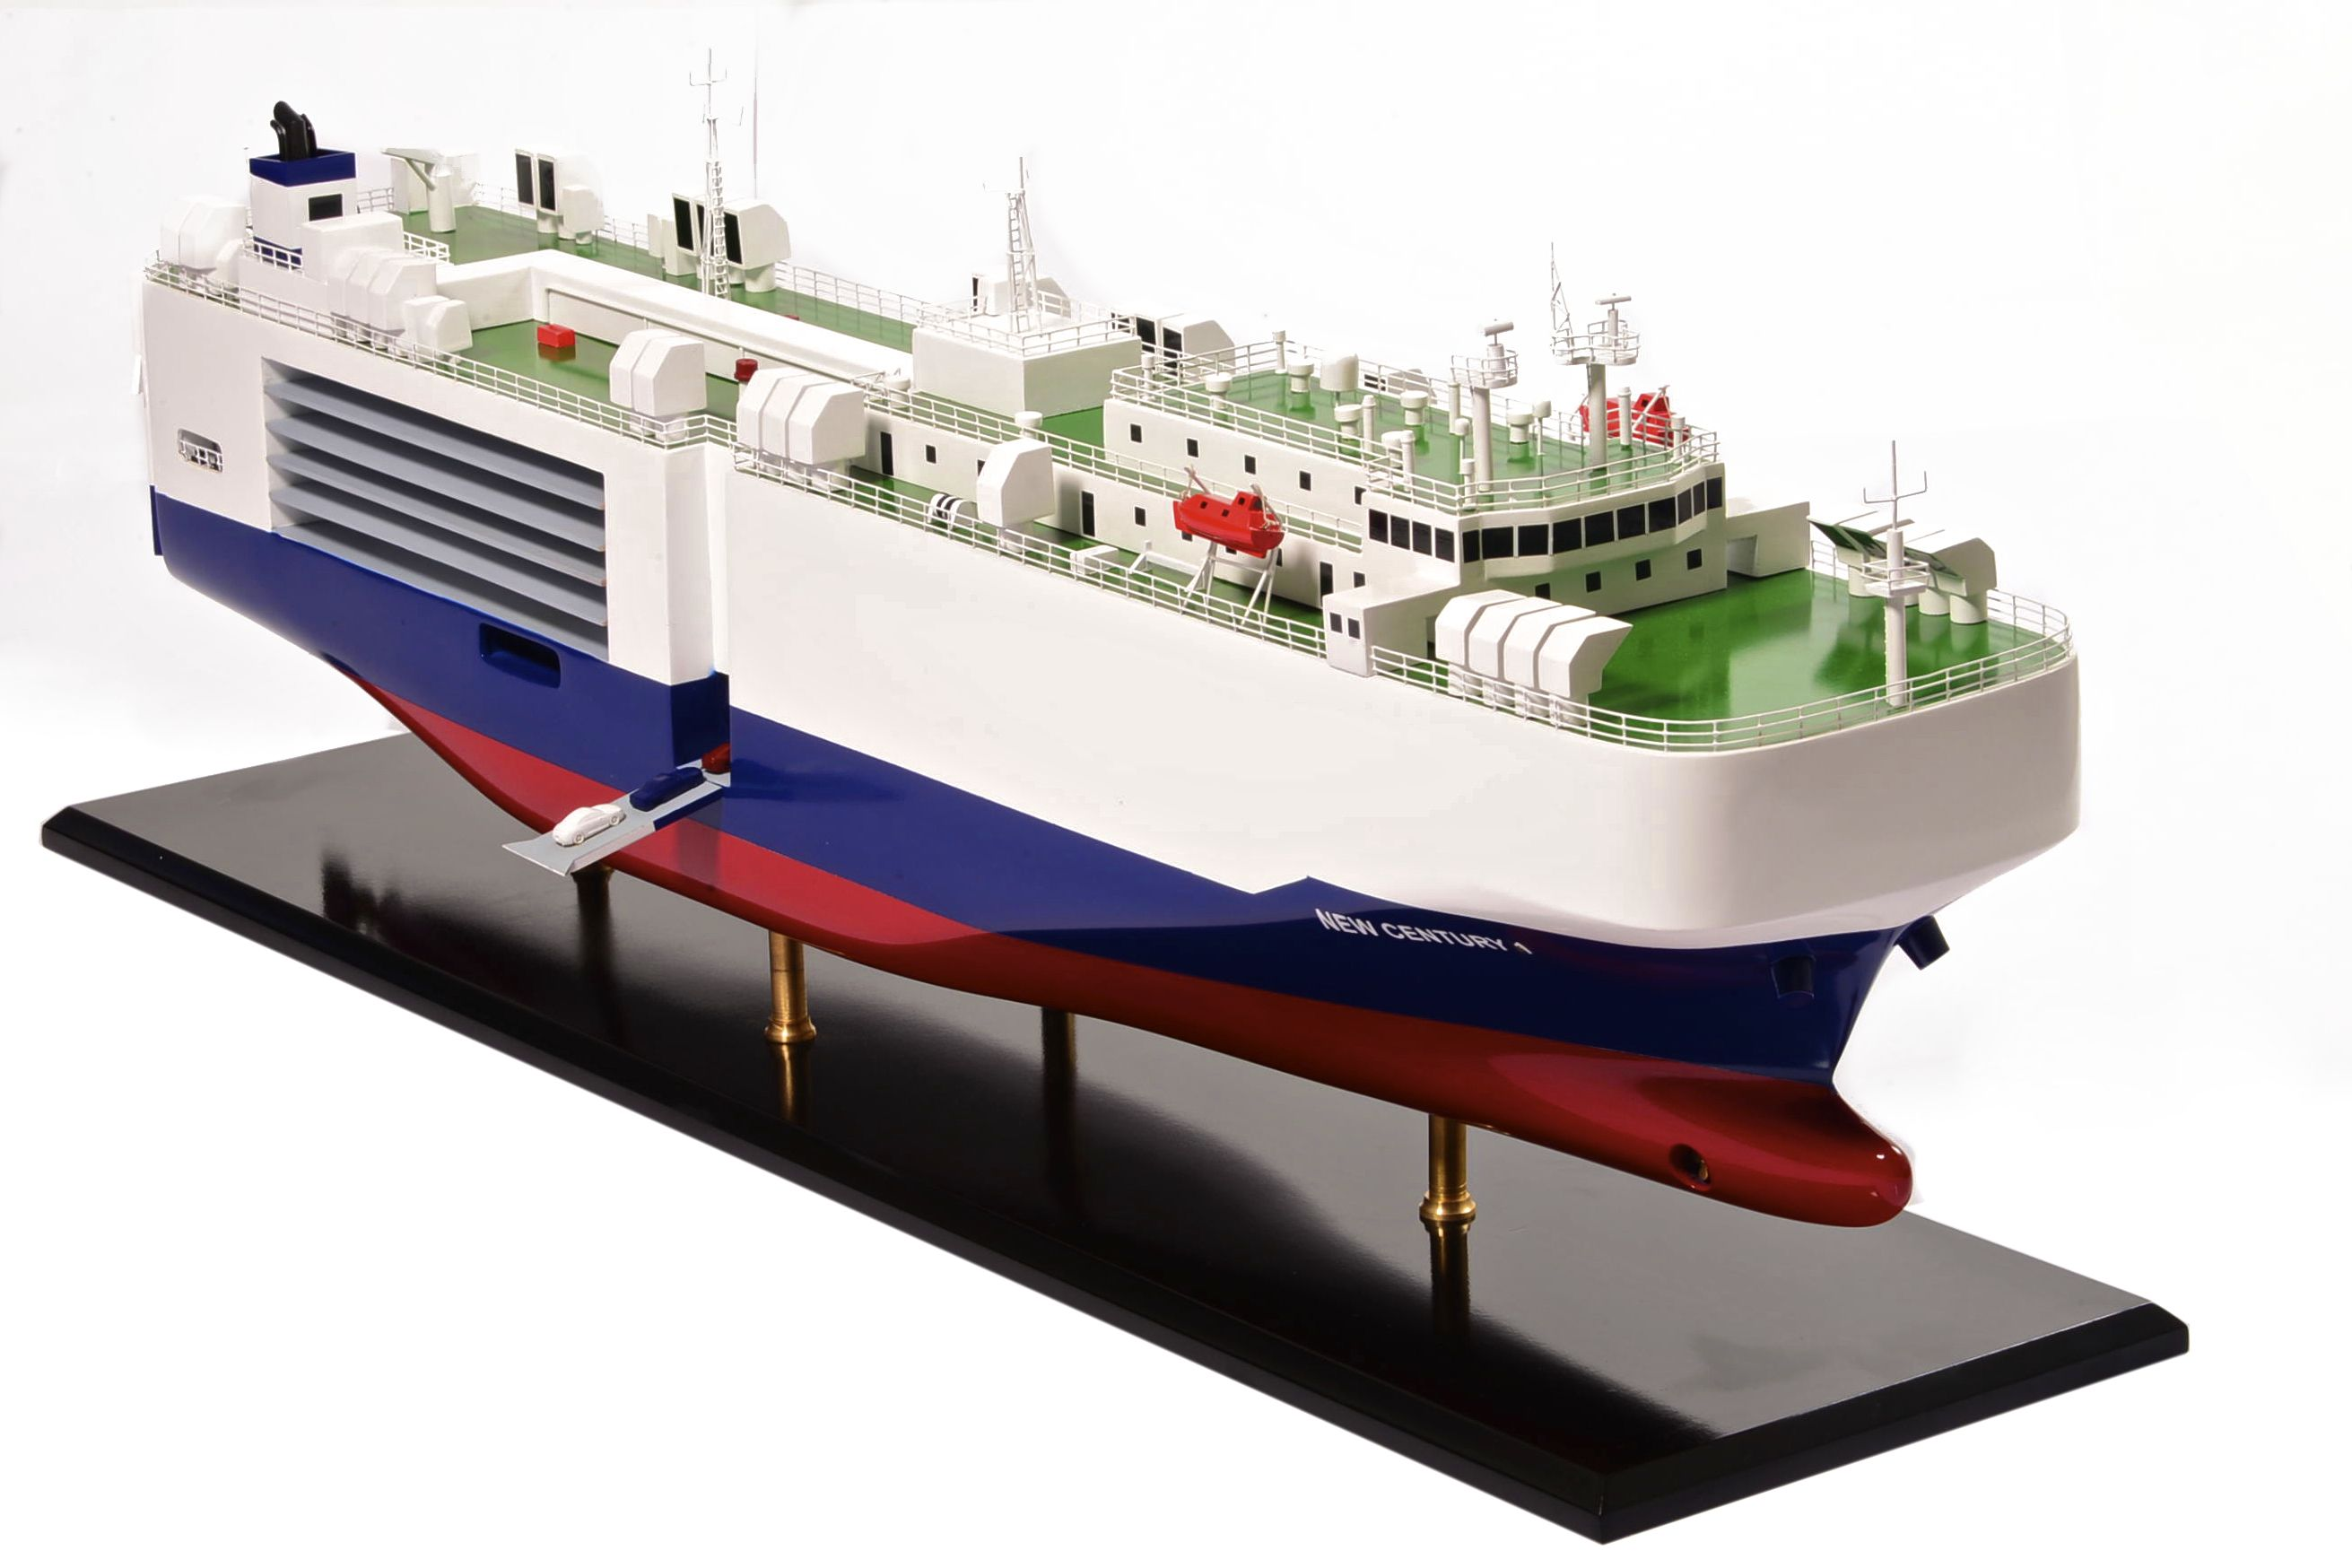 1834-10913-New-Century-1-Vehicle-Carrier-Model-Ship